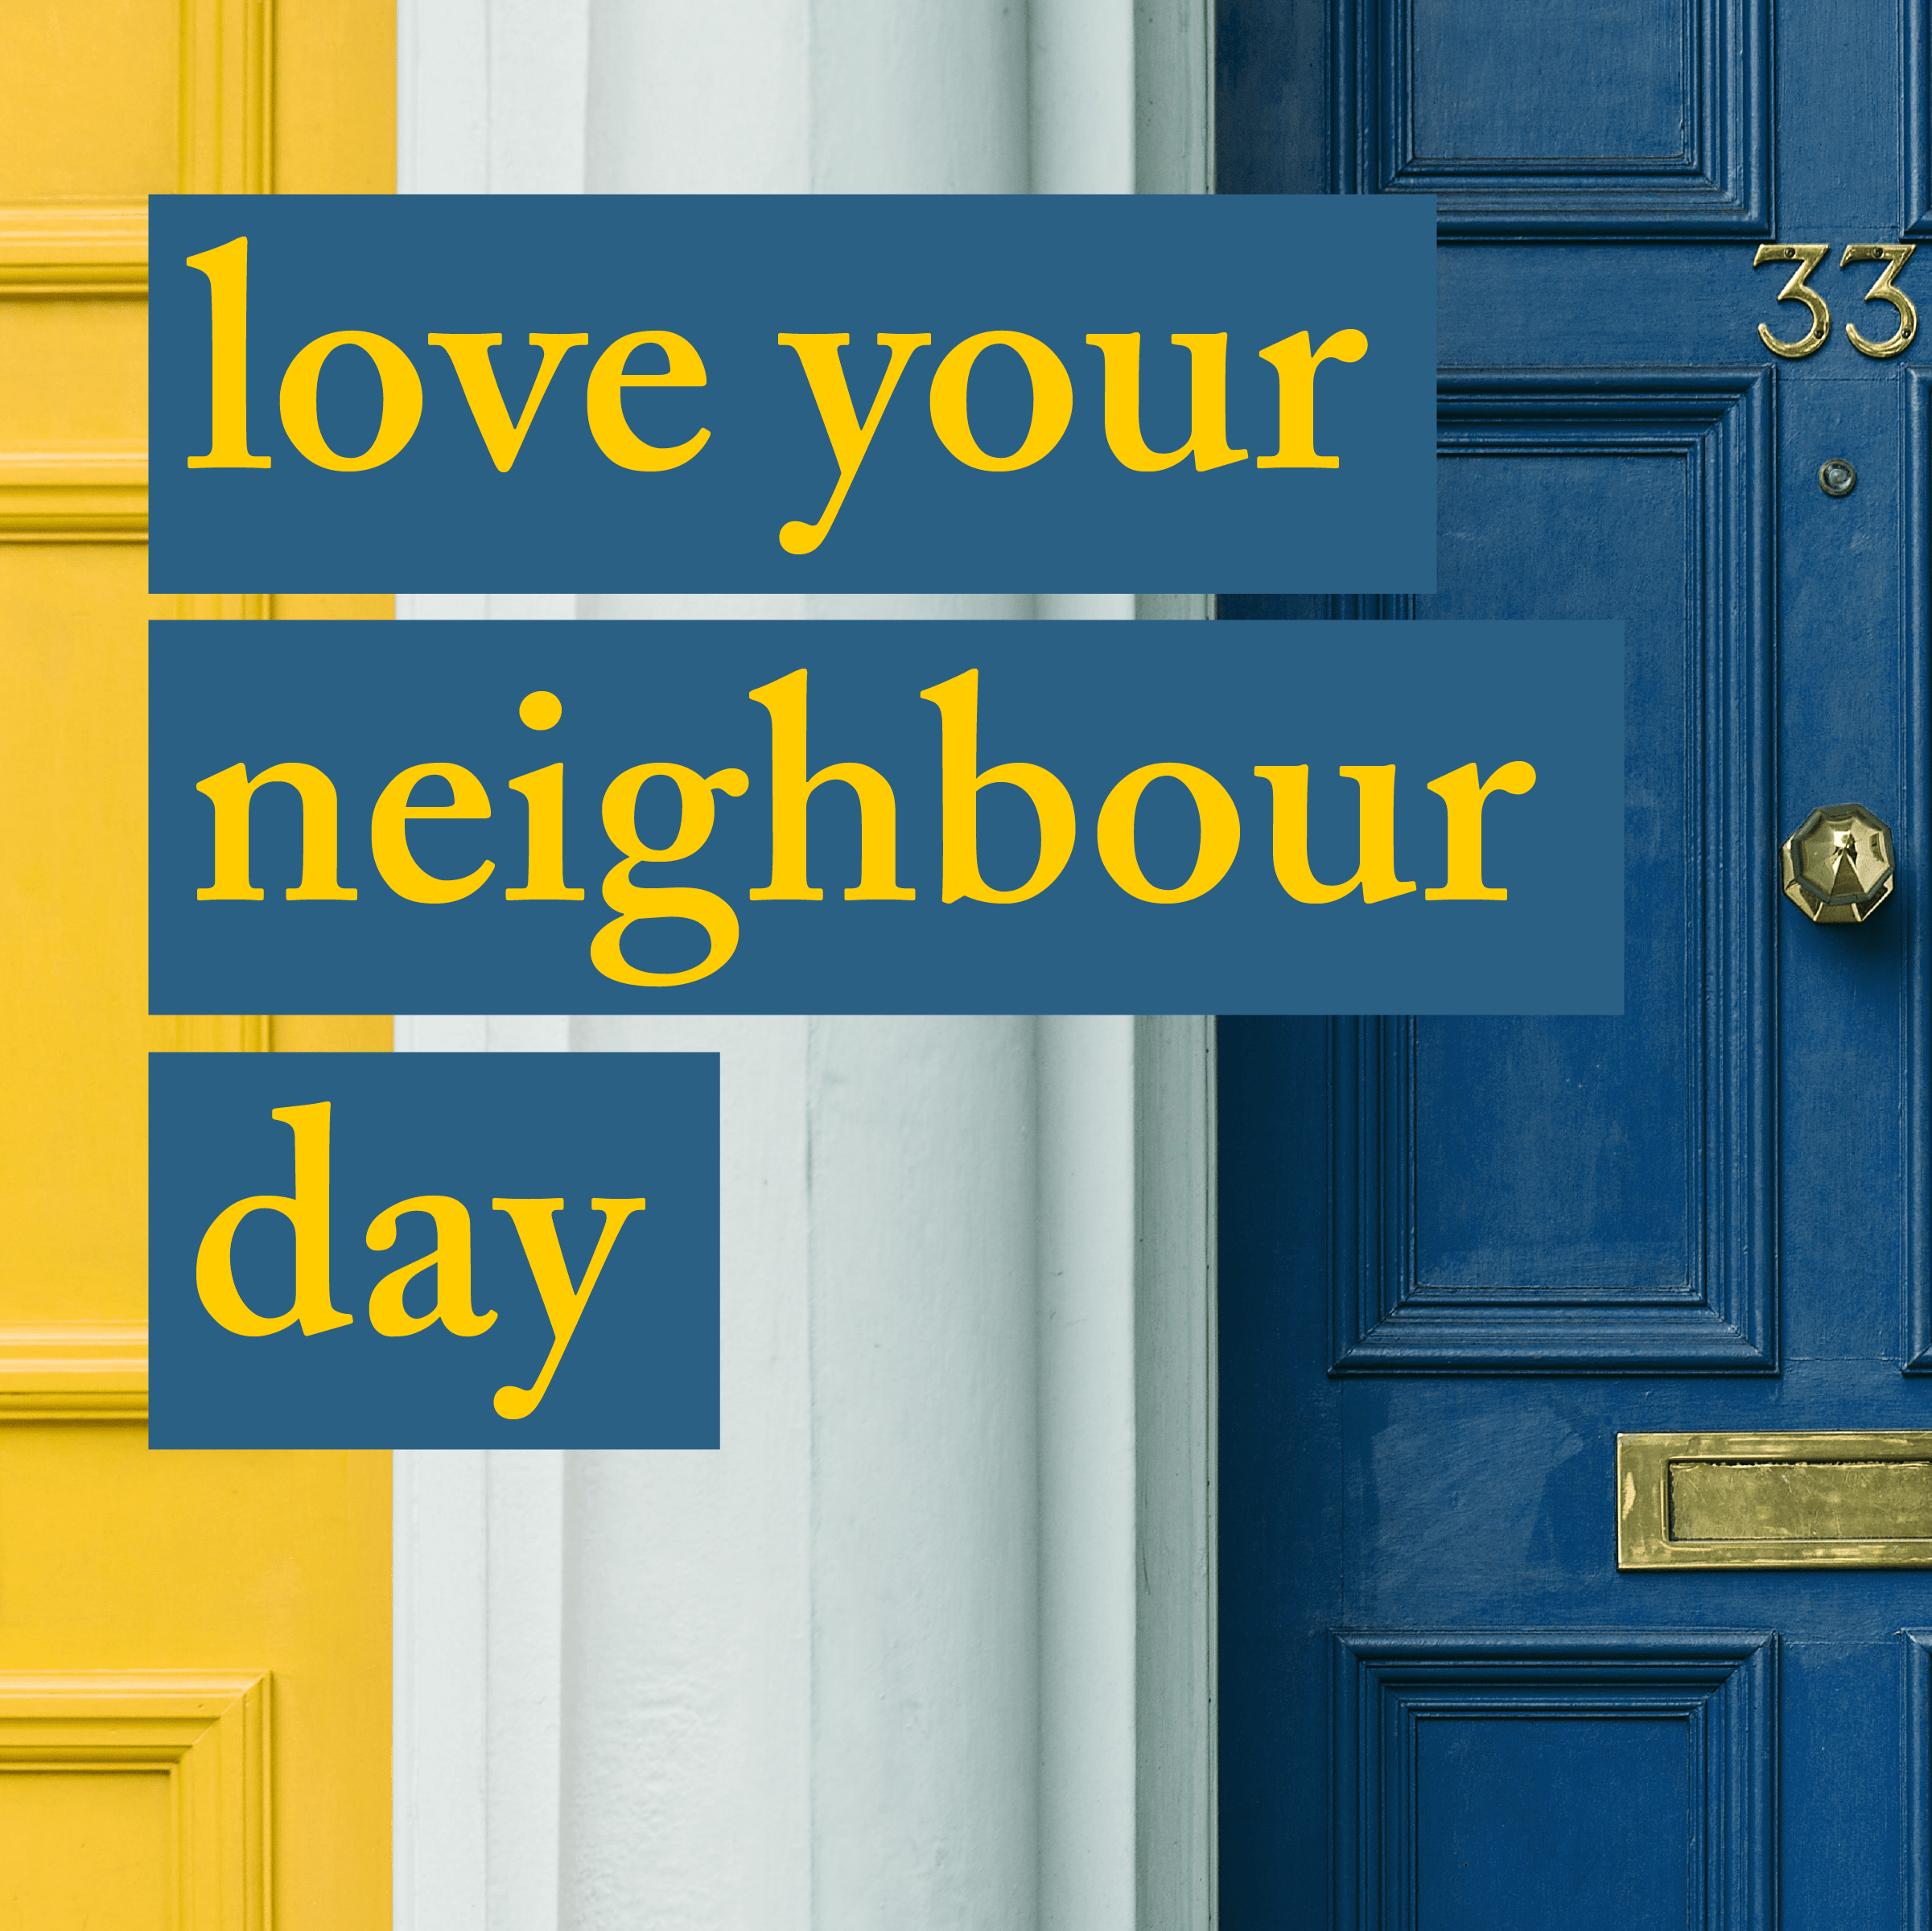 love your neighbour day